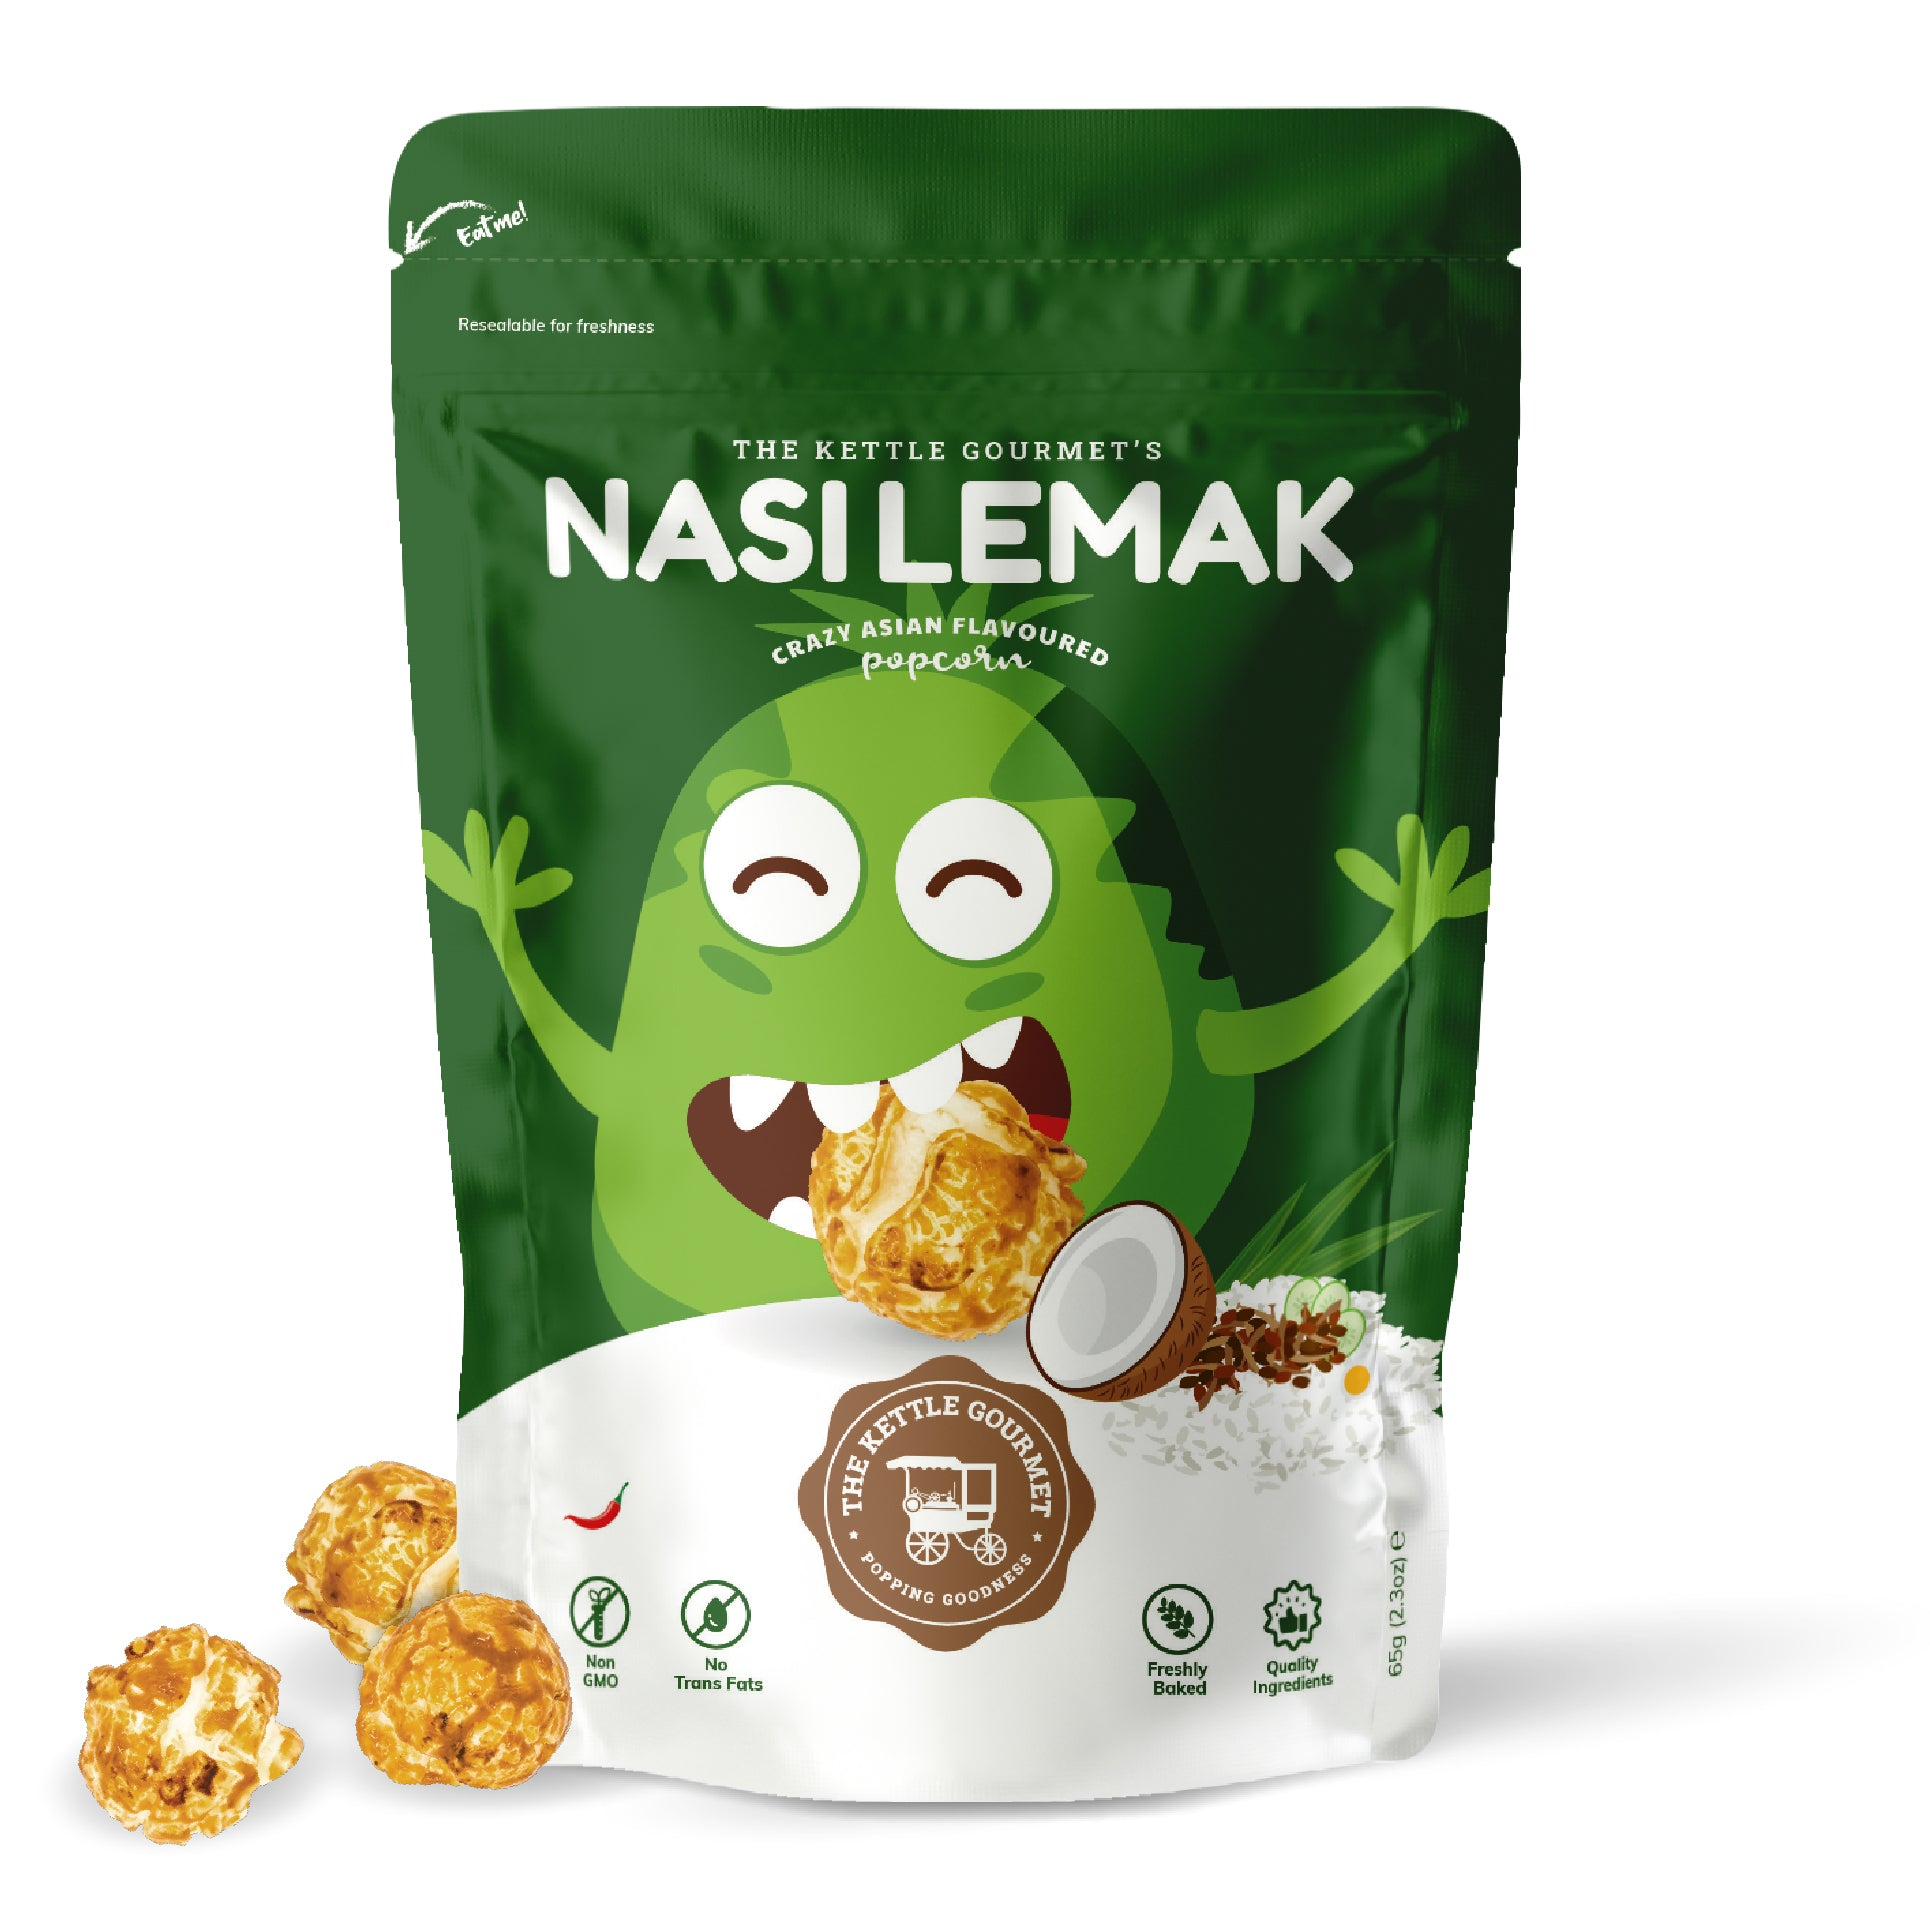 TKG Nasi Lemak (Crazy Asian Flavoured Popcorn)